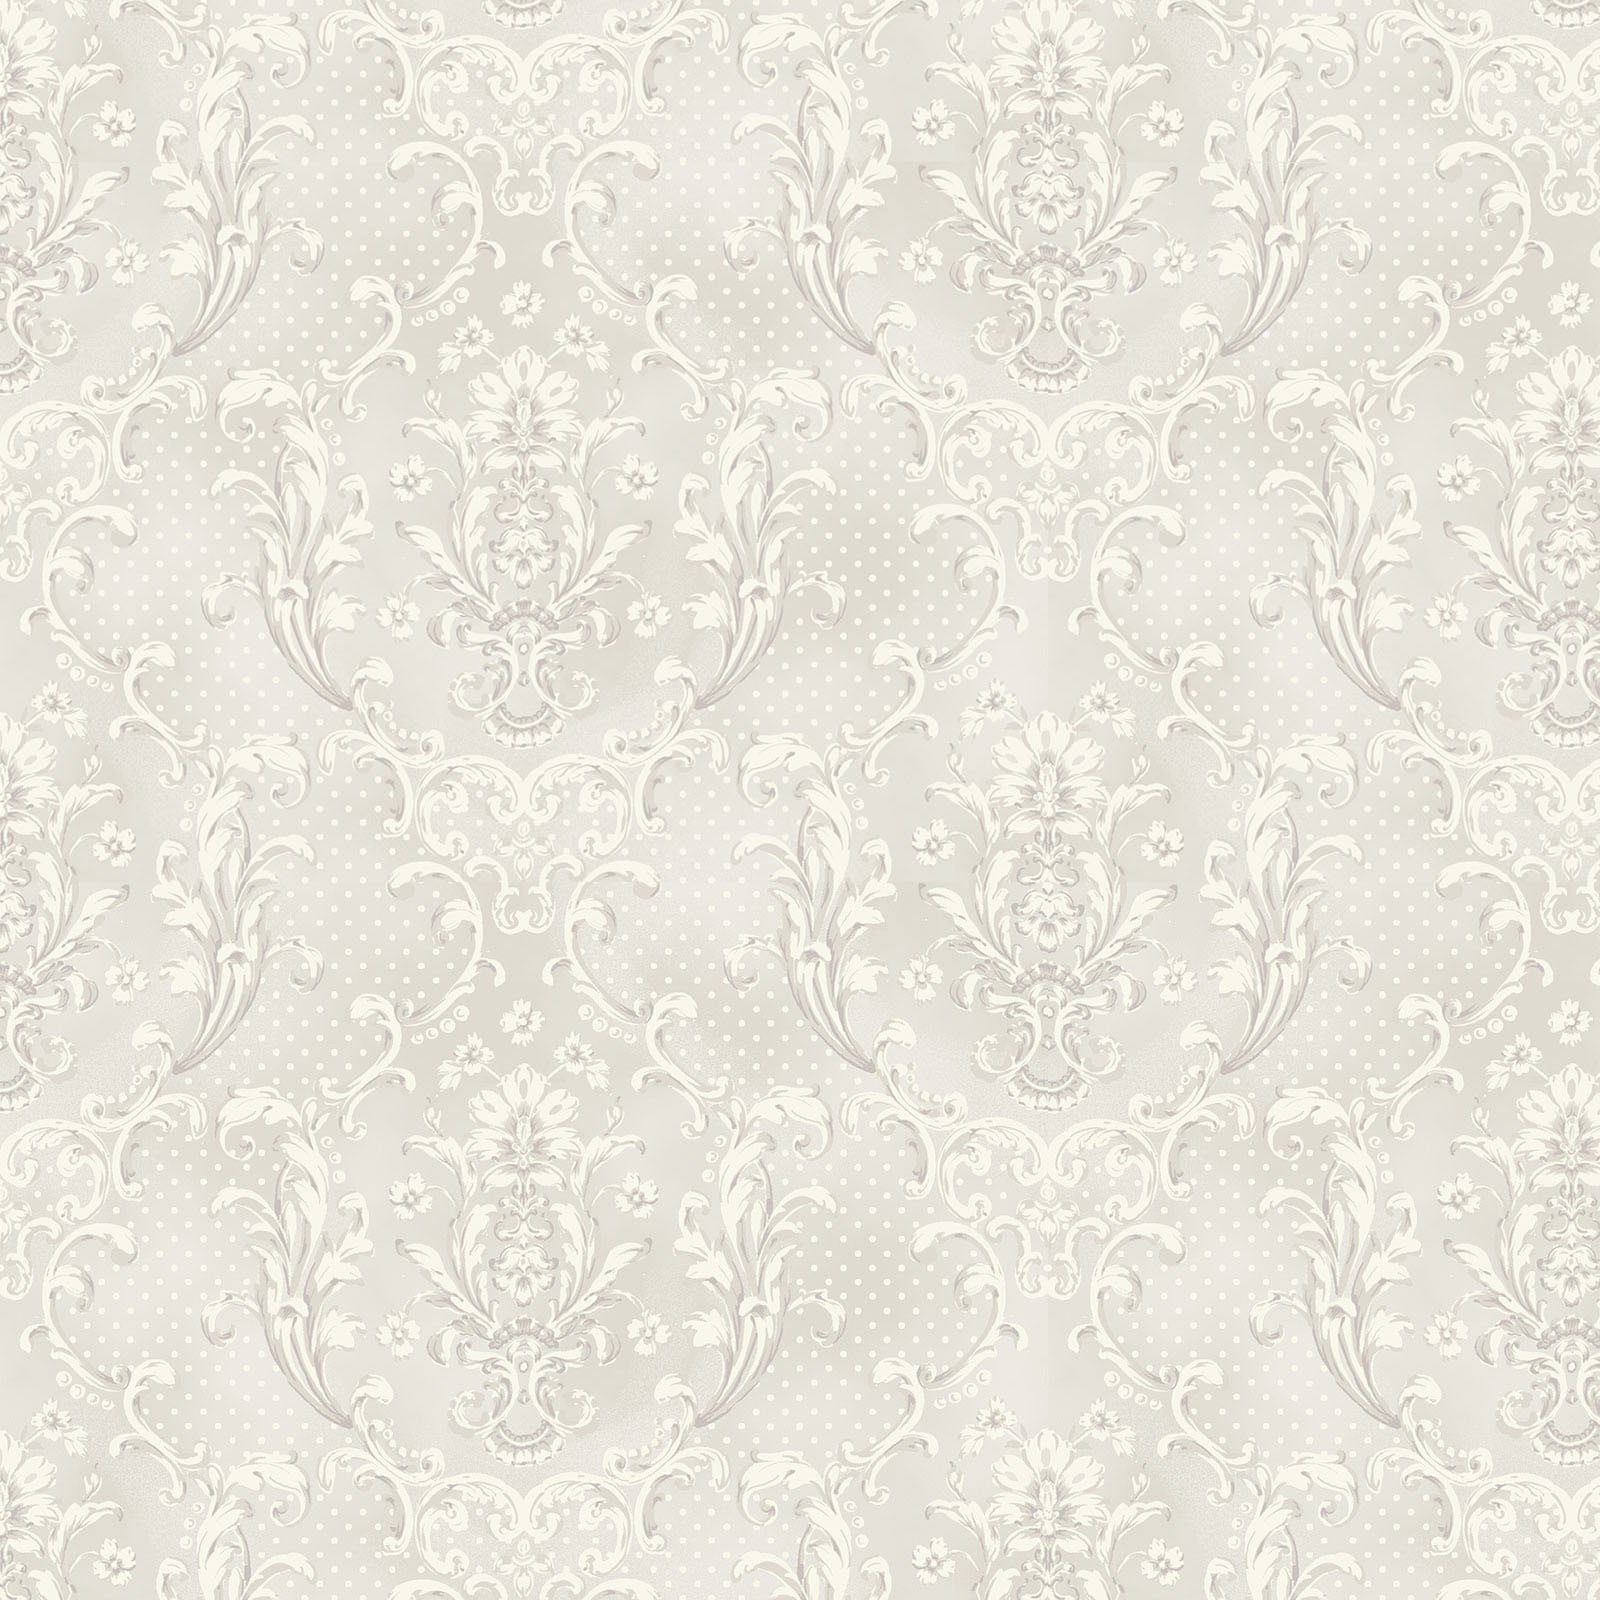 Sweet Rose Damask Pale Grey<br/>Quilt Gate 2330-17A